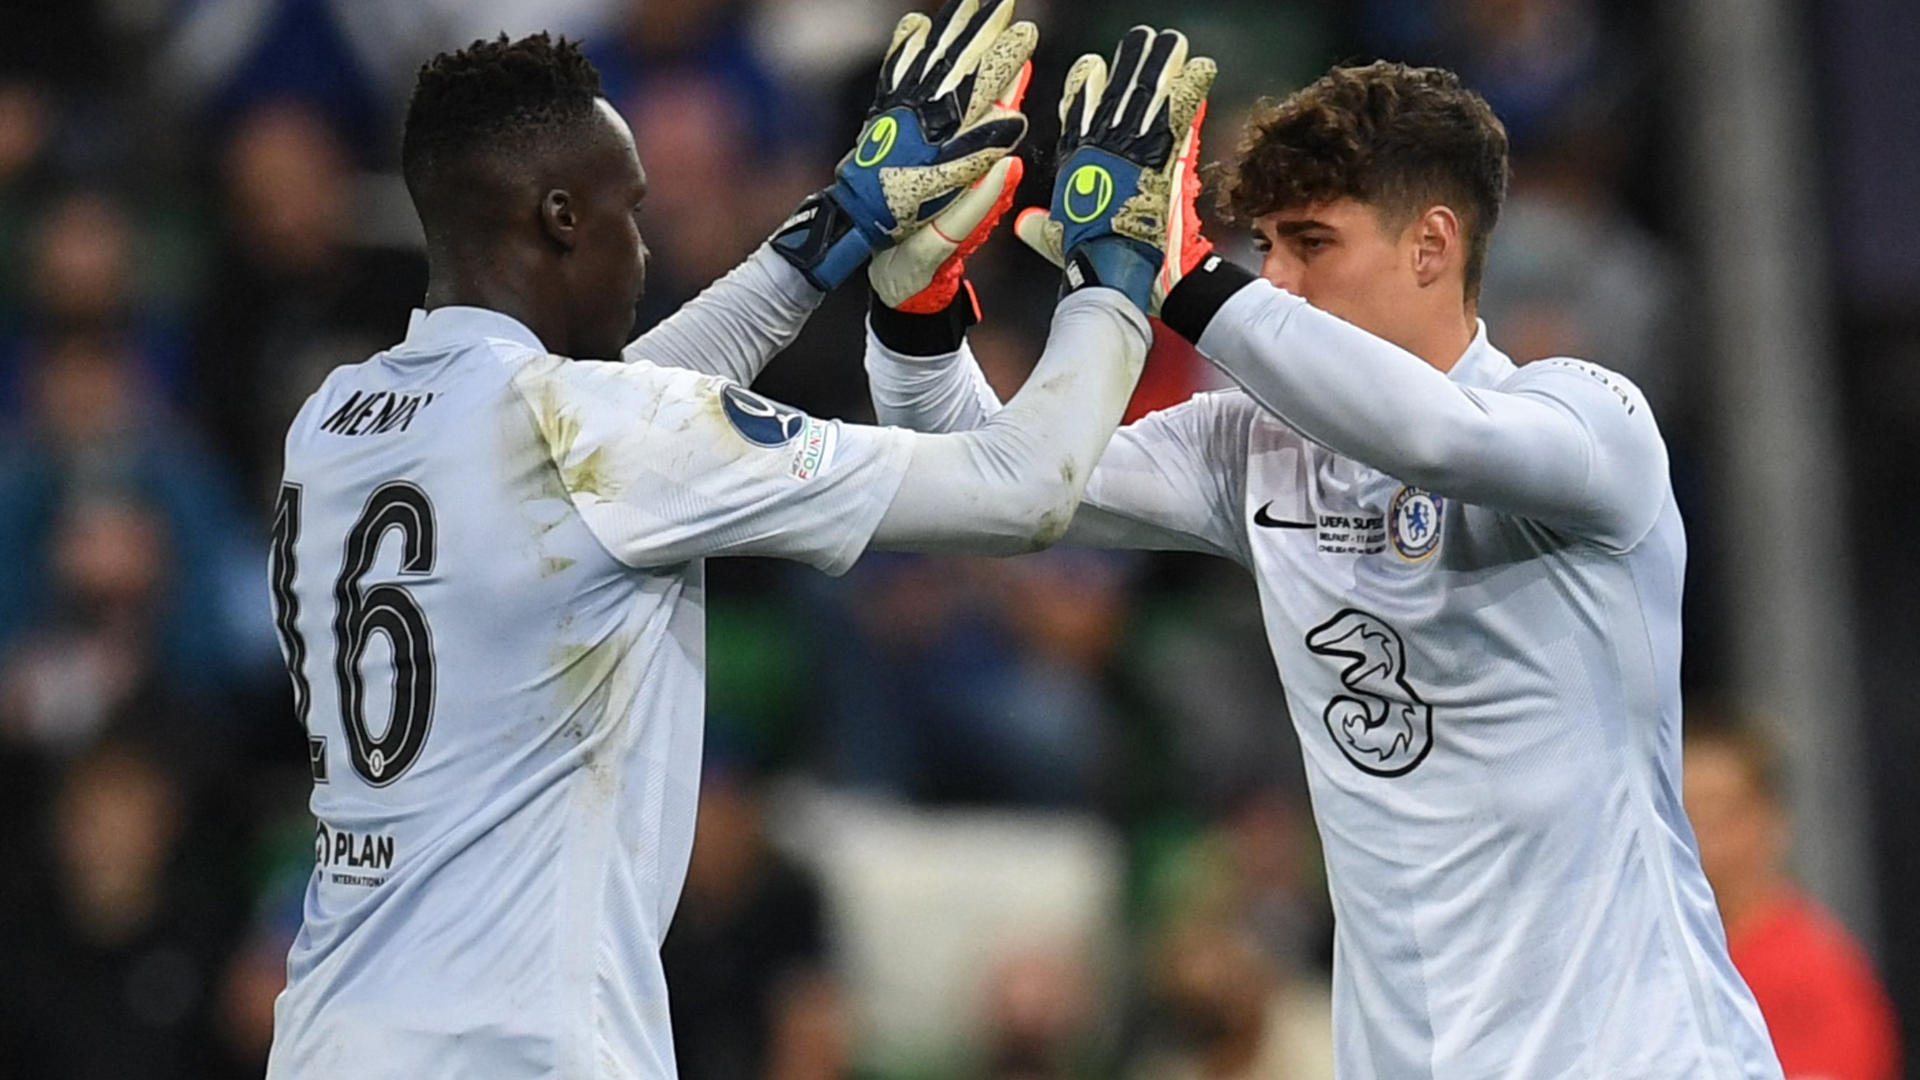 'Mendy remains Chelsea's first choice' – Keeper backed by Akinroyeje after Arrizabalaga heroics